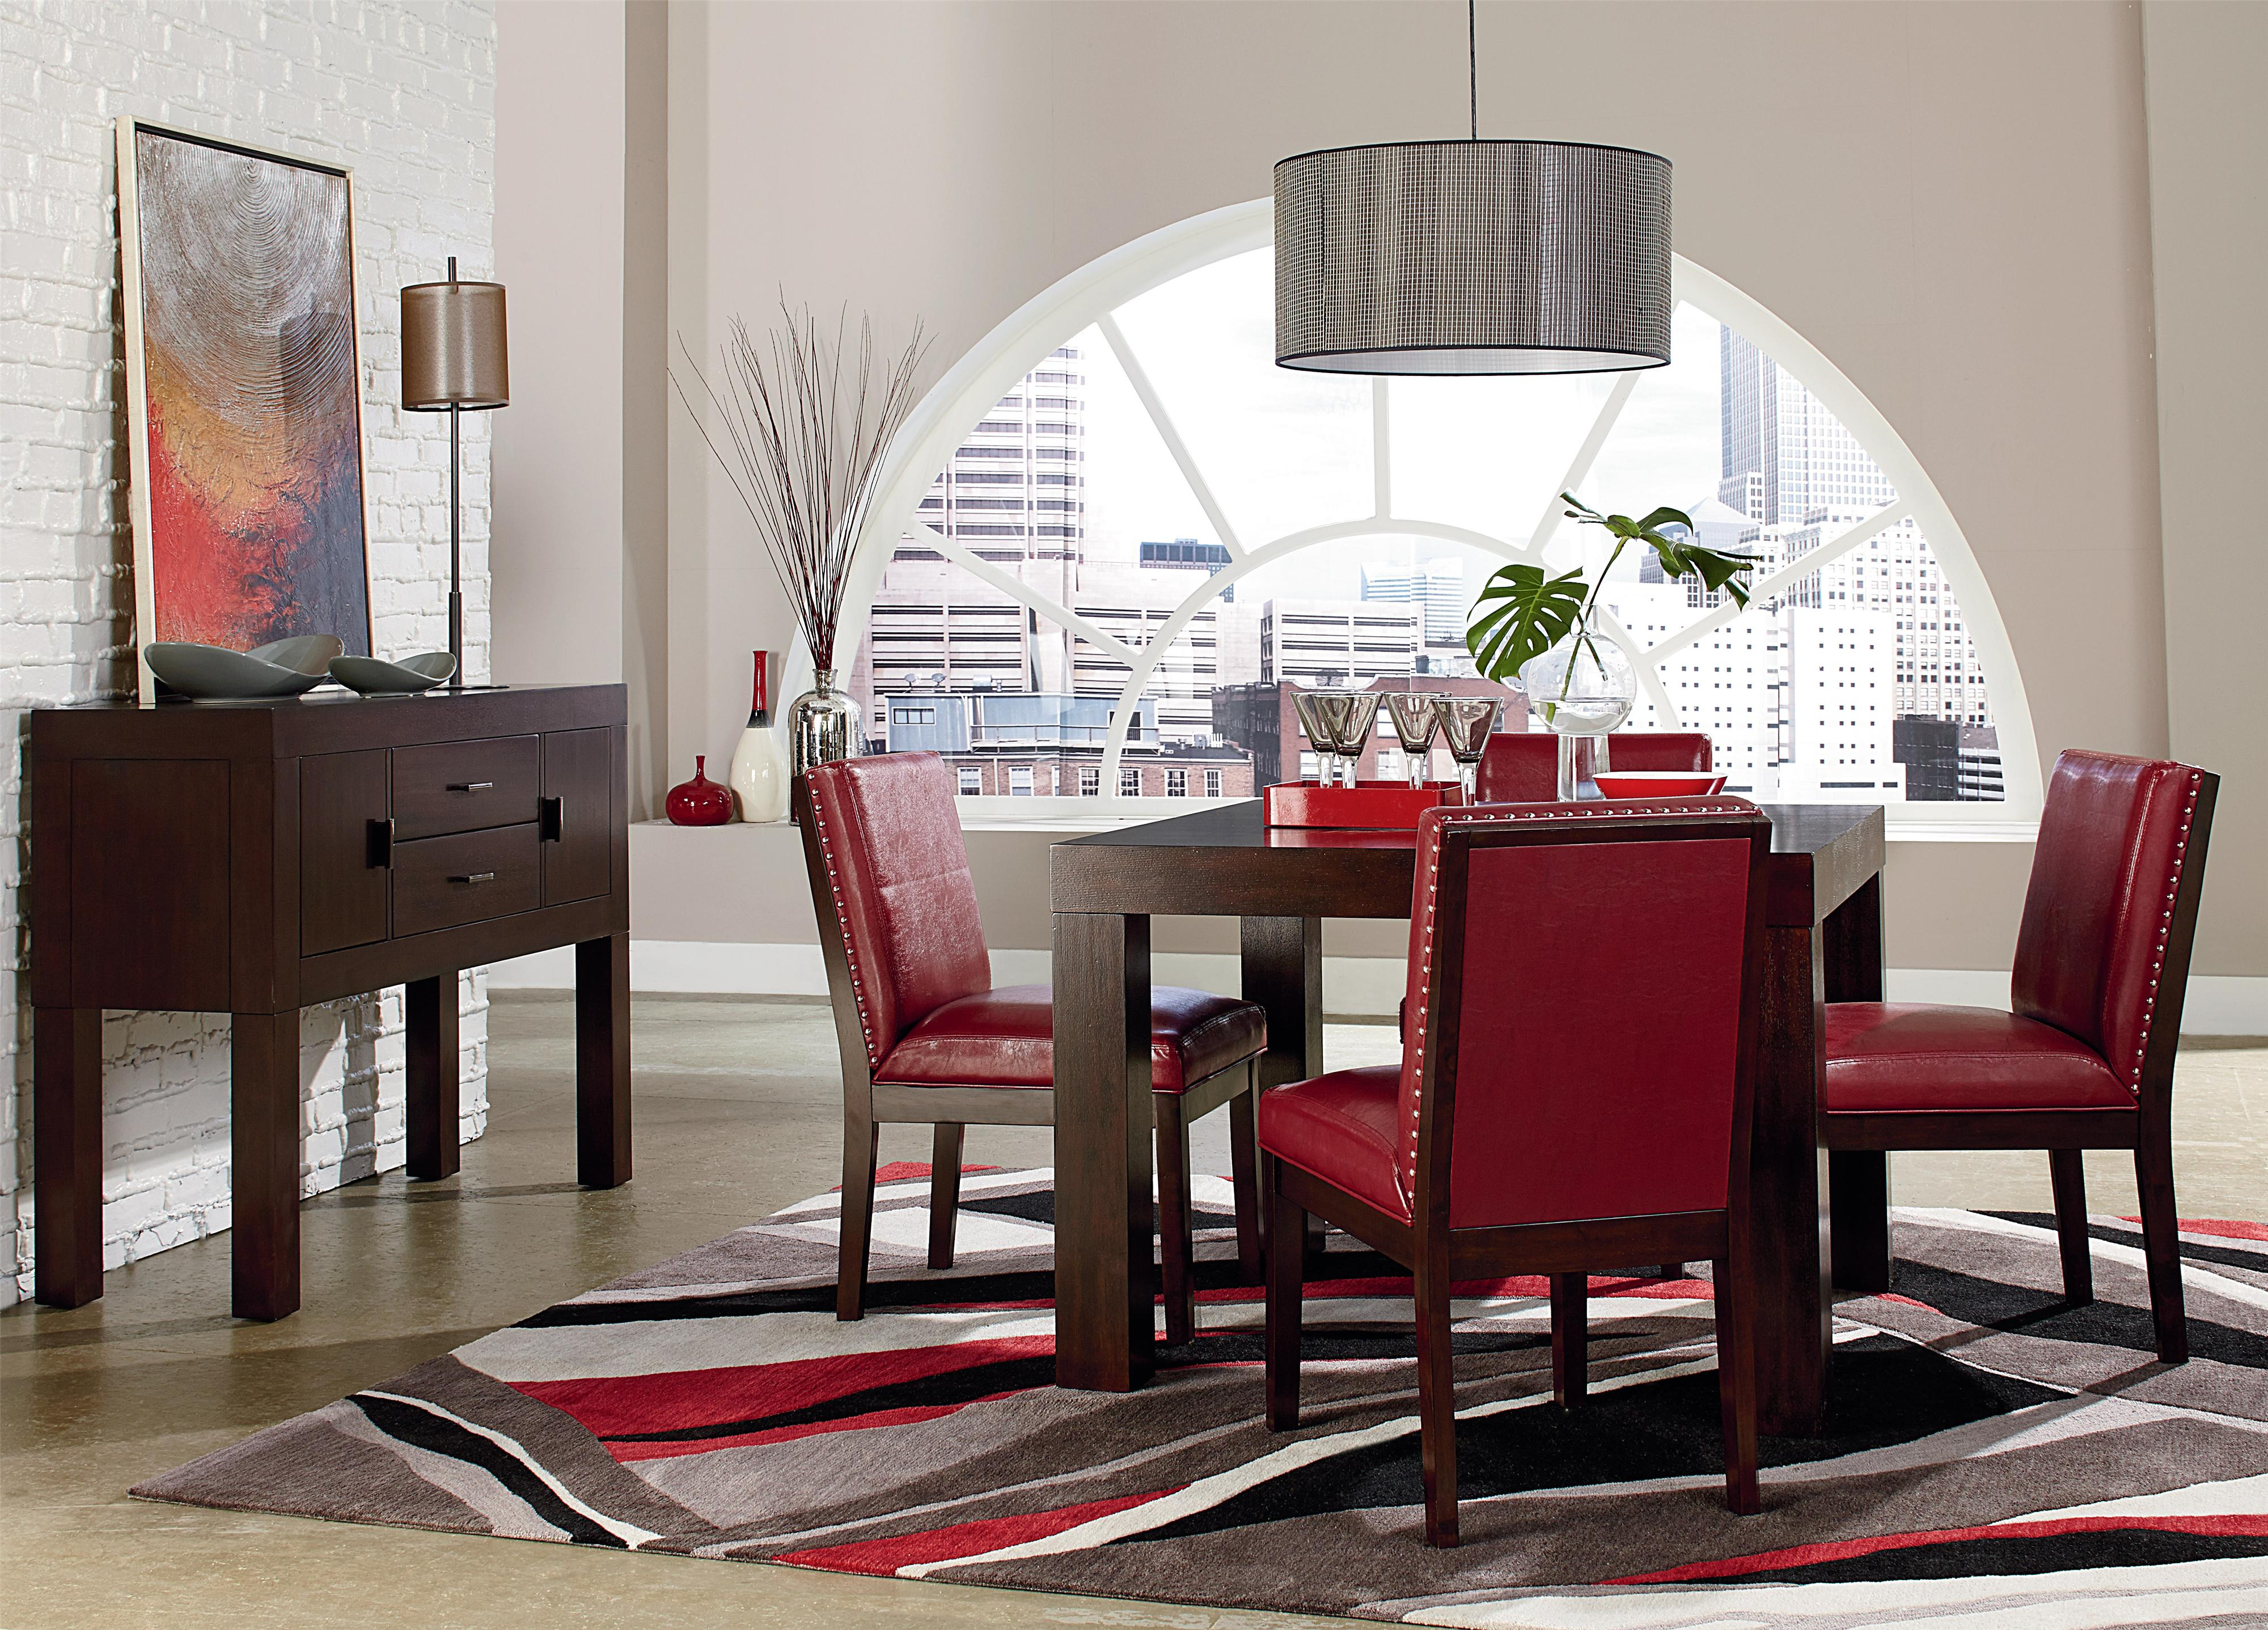 Standard Furniture Couture Elegance Dining Room Group - Item Number: 10560 Dining Room Group 3